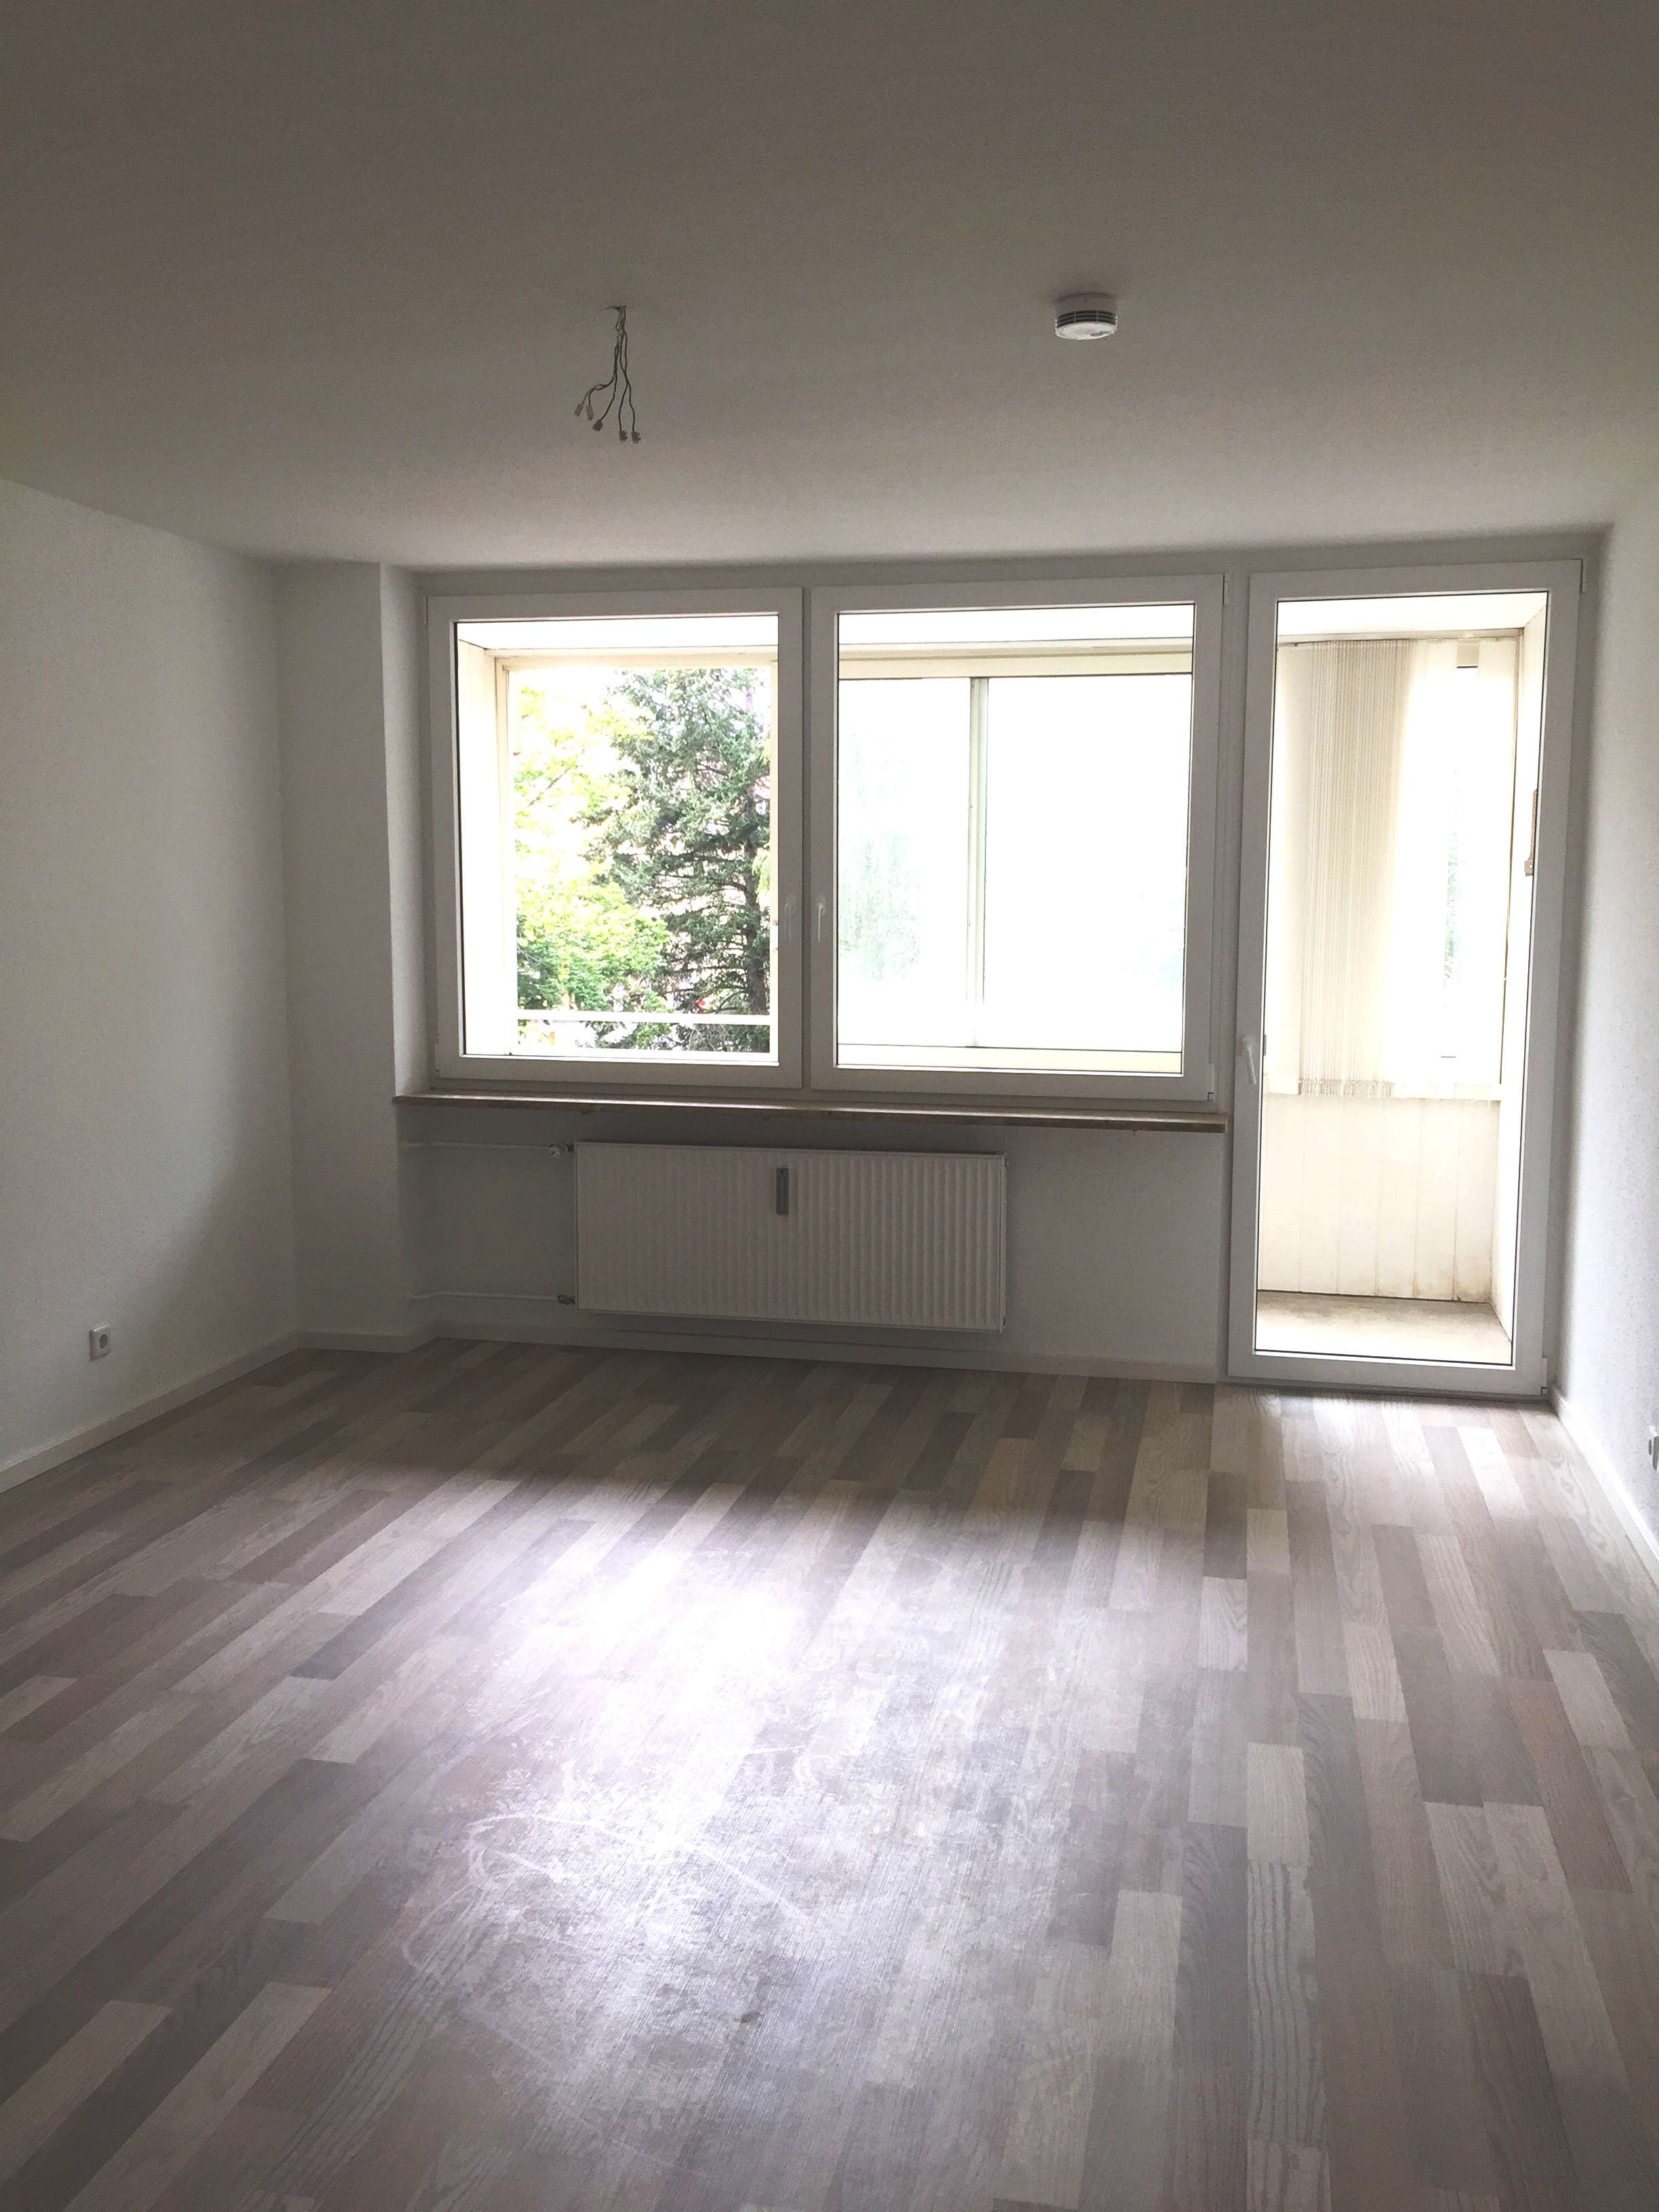 *provisionsfrei* möbliertes 1-Zi Apartment in Nürnberger City in